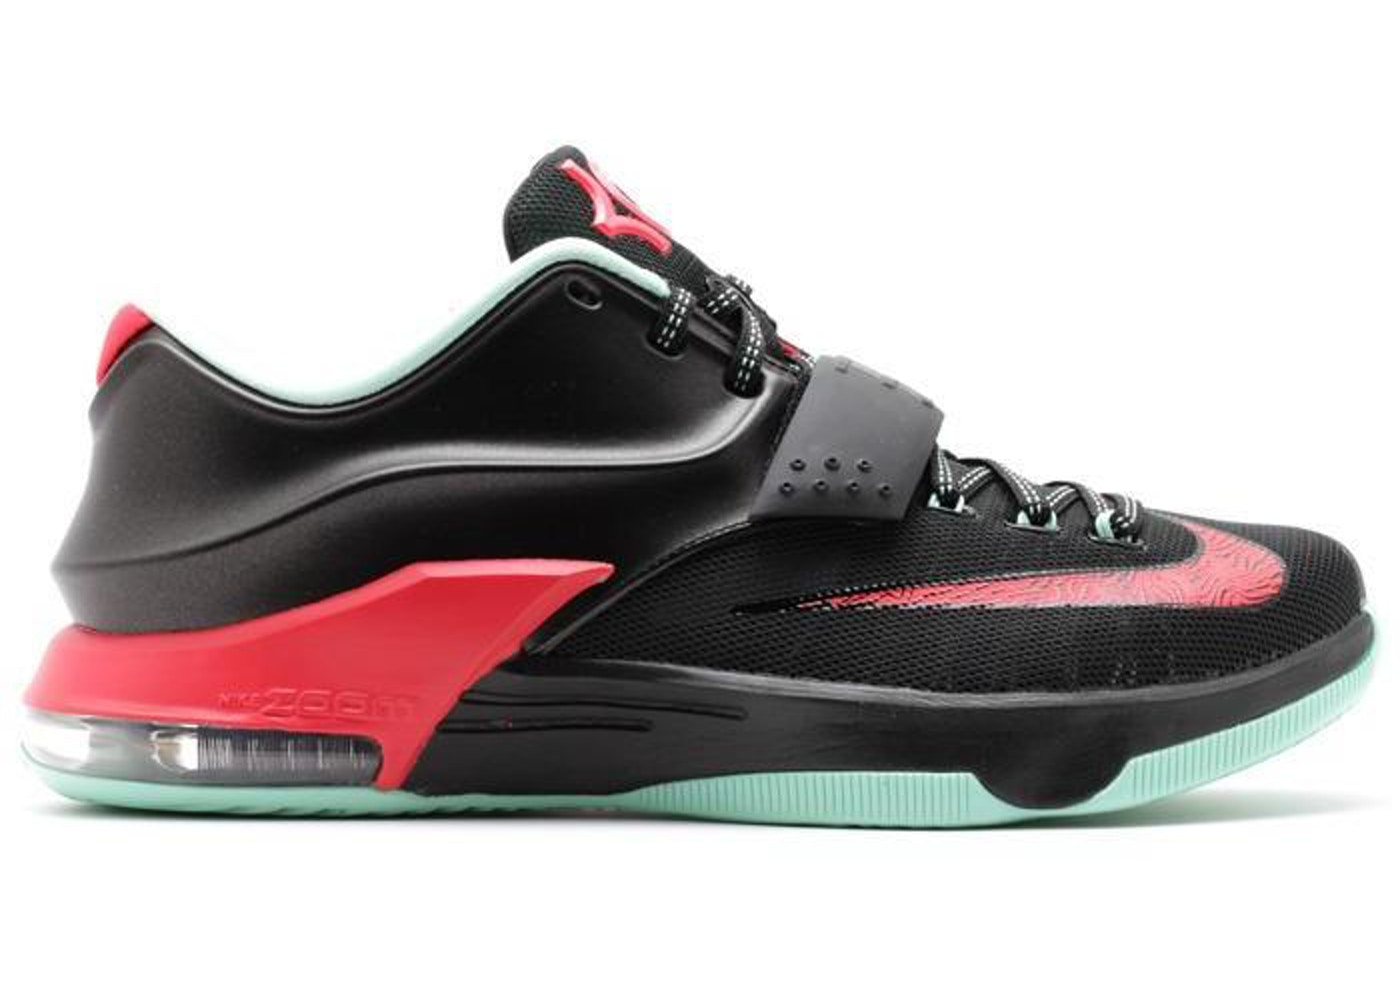 best value ffd9d 73796 Buy Nike KD 7 Shoes & Deadstock Sneakers